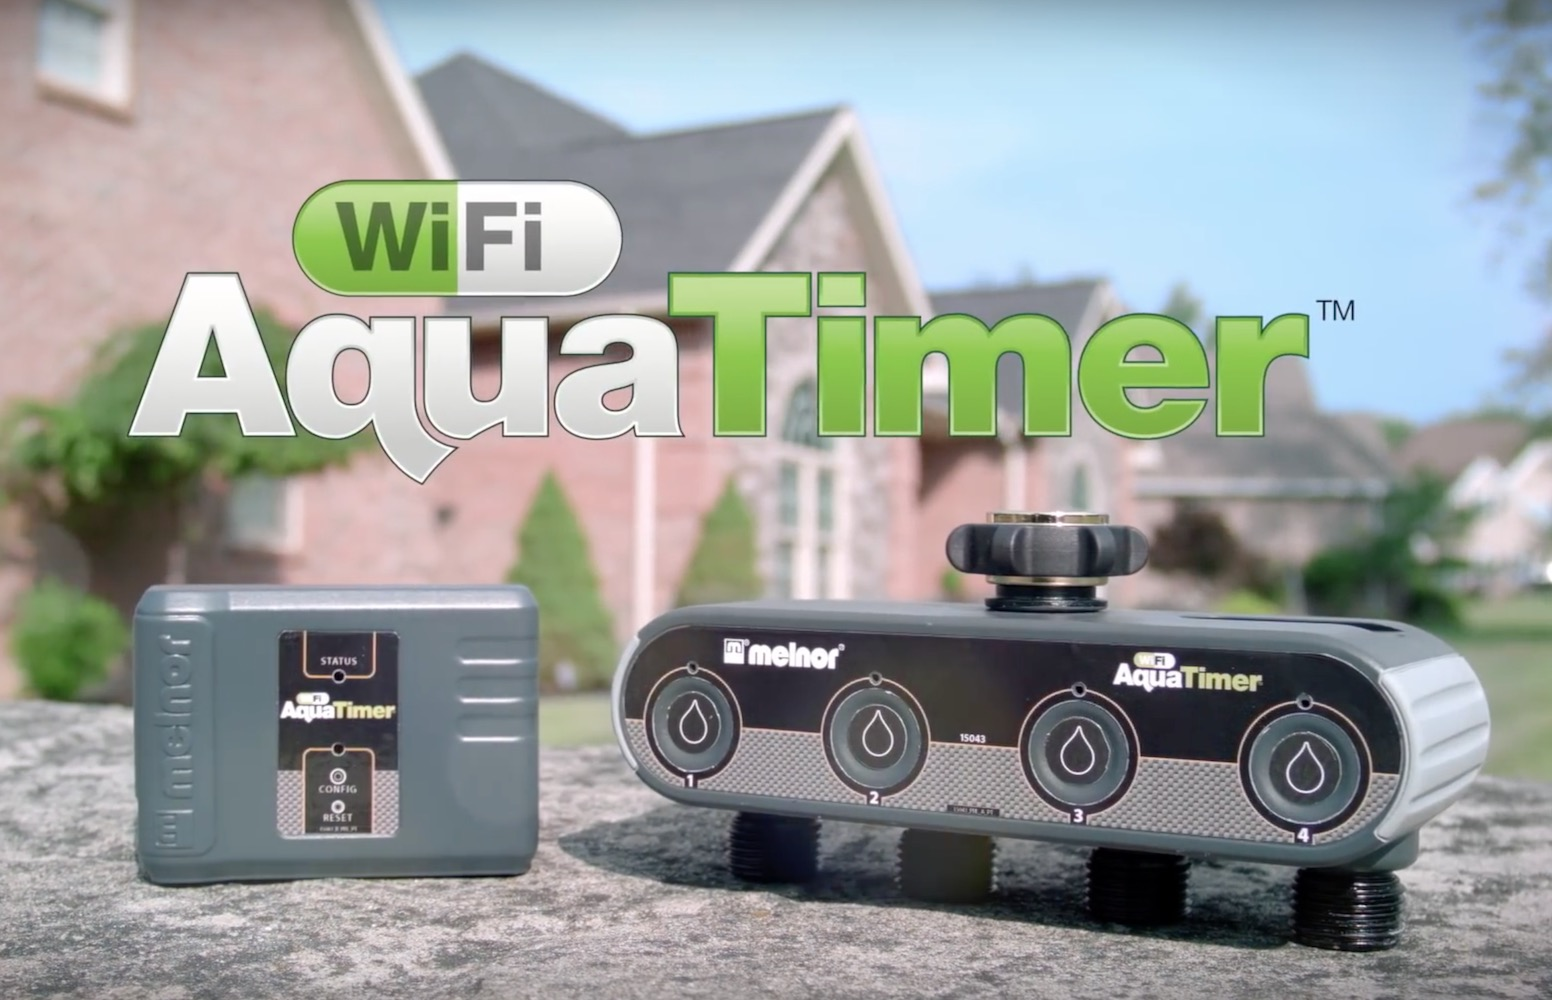 AquaTimer Wi-Fi Connected Garden Hose System